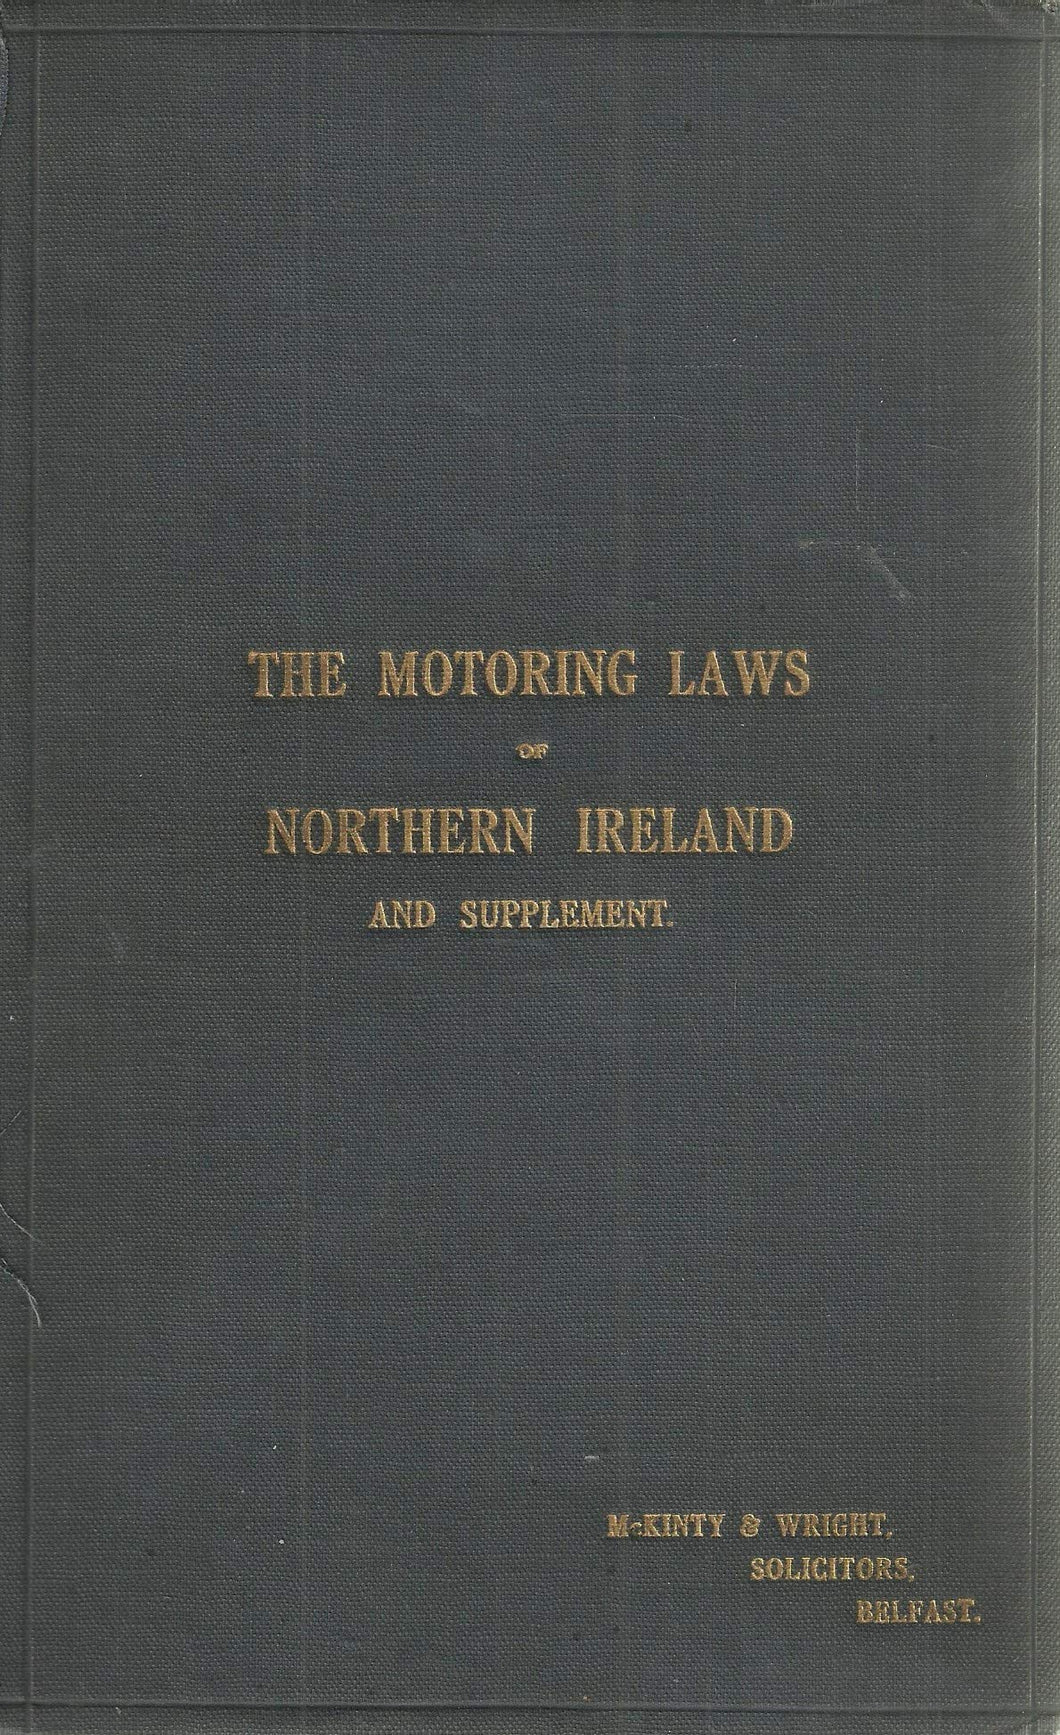 Motoring Laws of Northern Ireland (And Supplement)